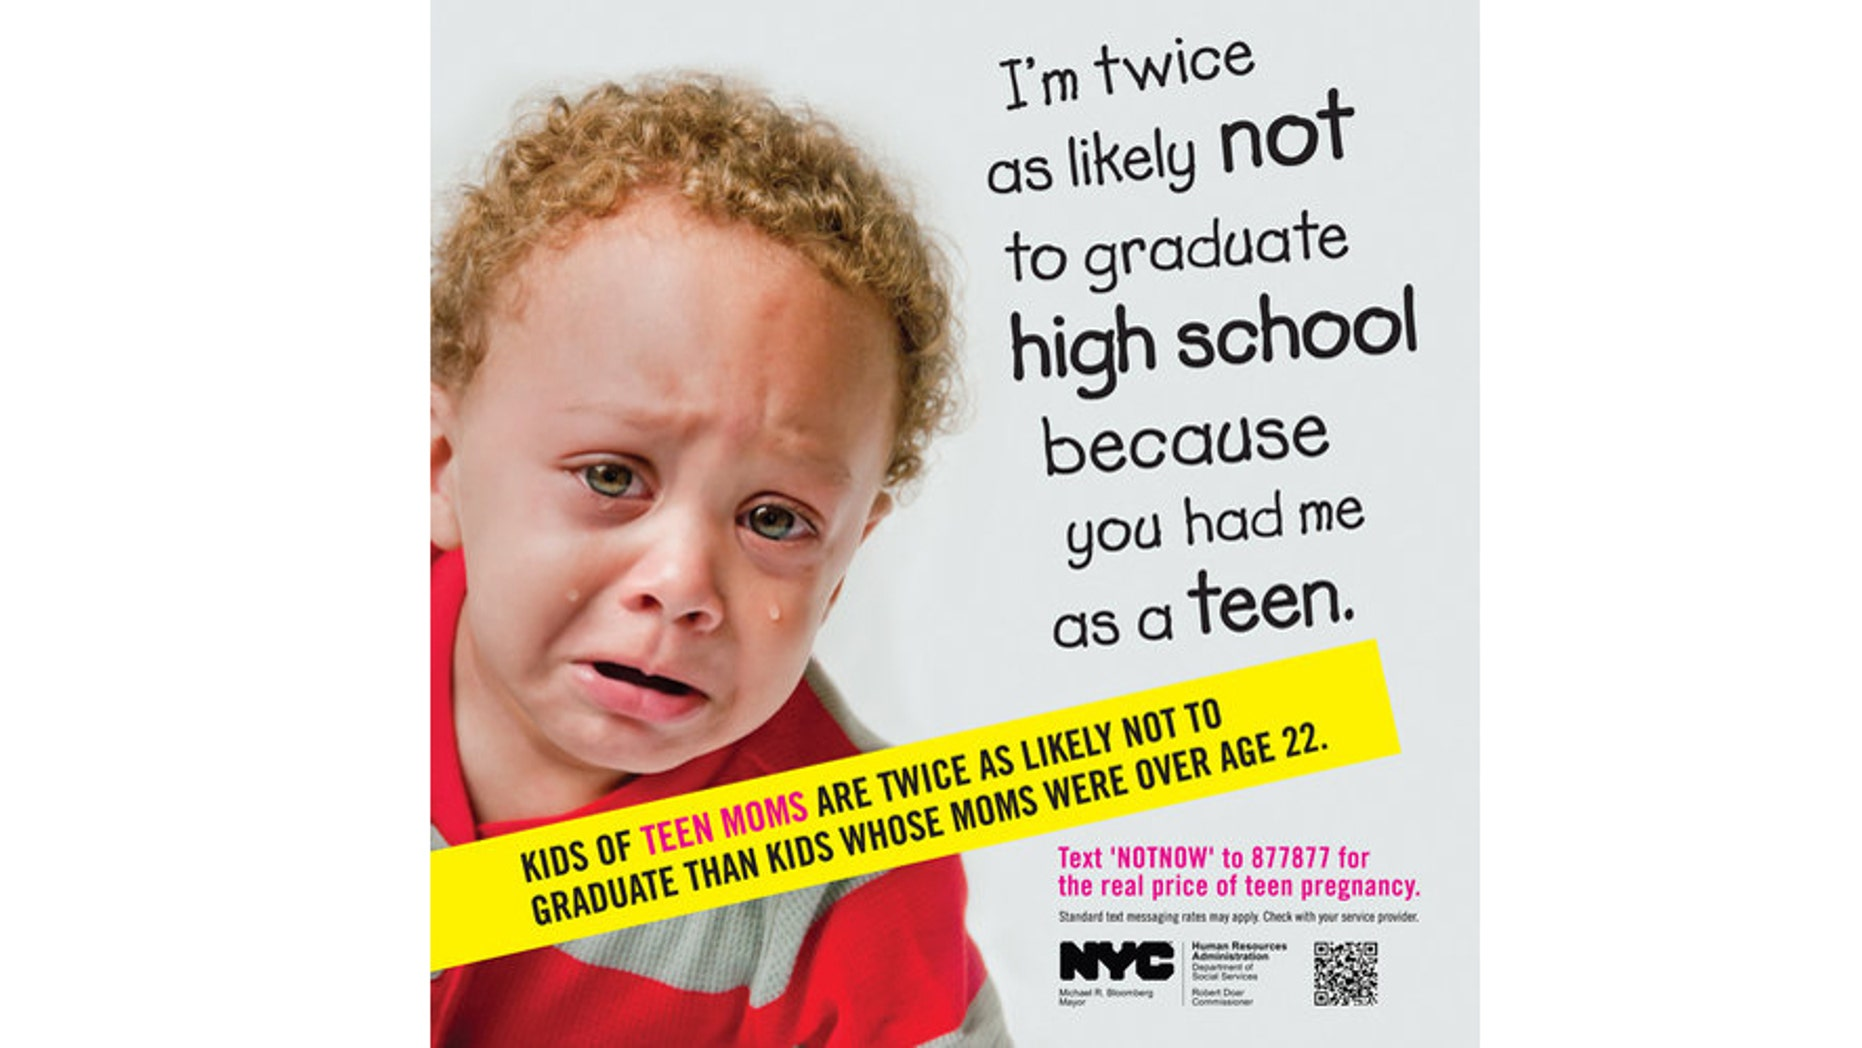 The new teen pregnancy prevention ads by the New York City Human Resources Administration are causing a stir.